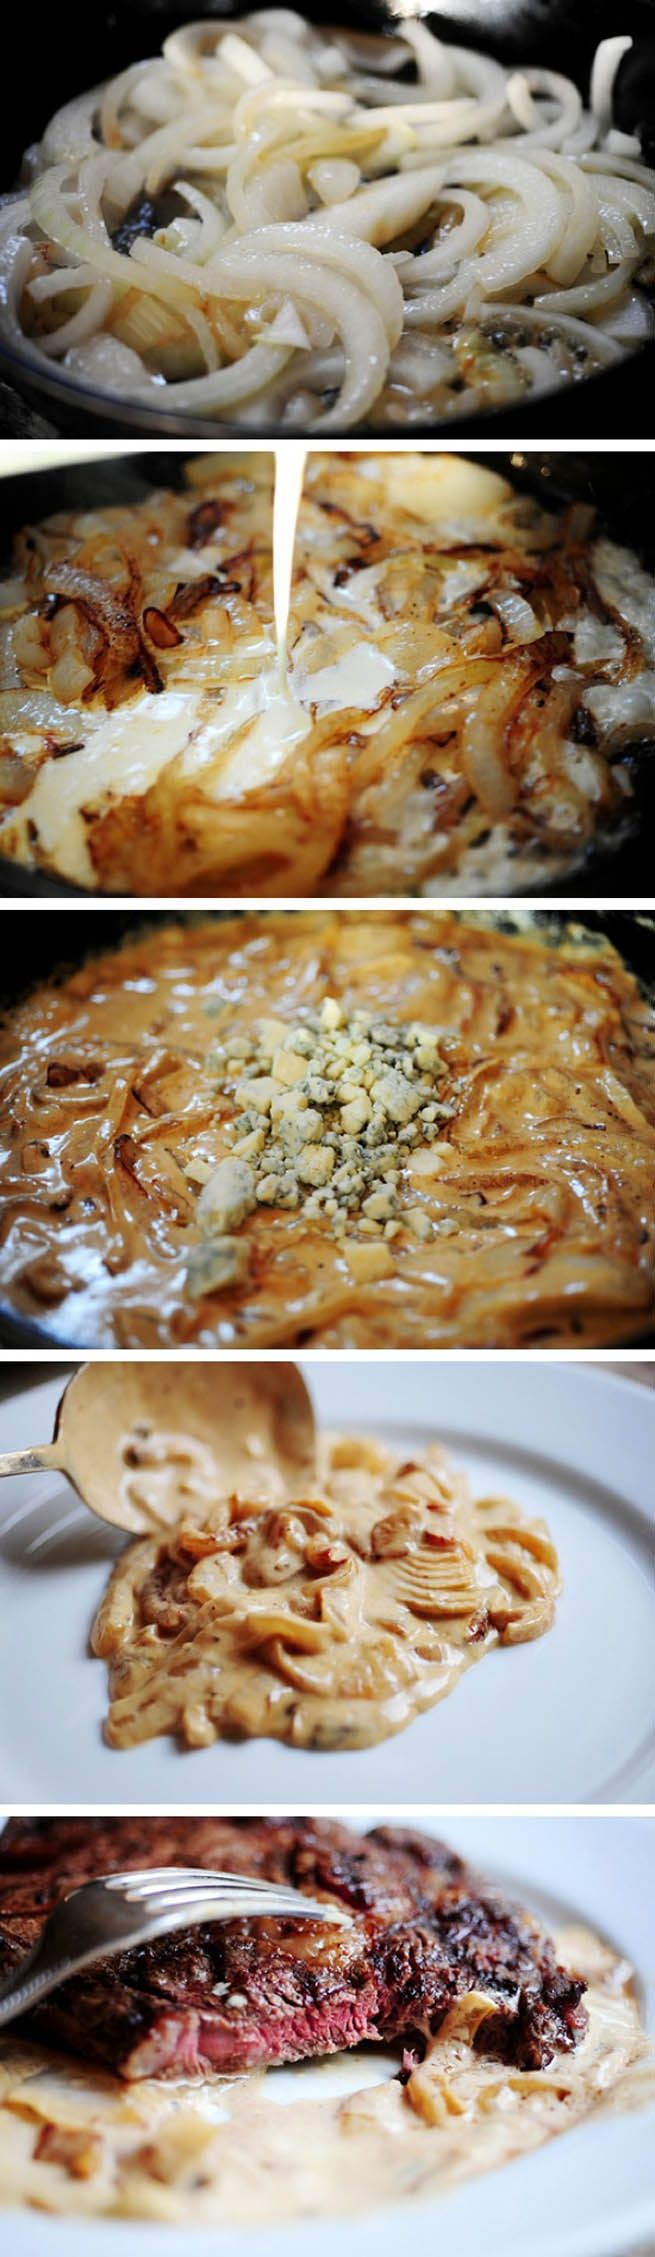 Grilled Steak with Onion and Cheese Sauce